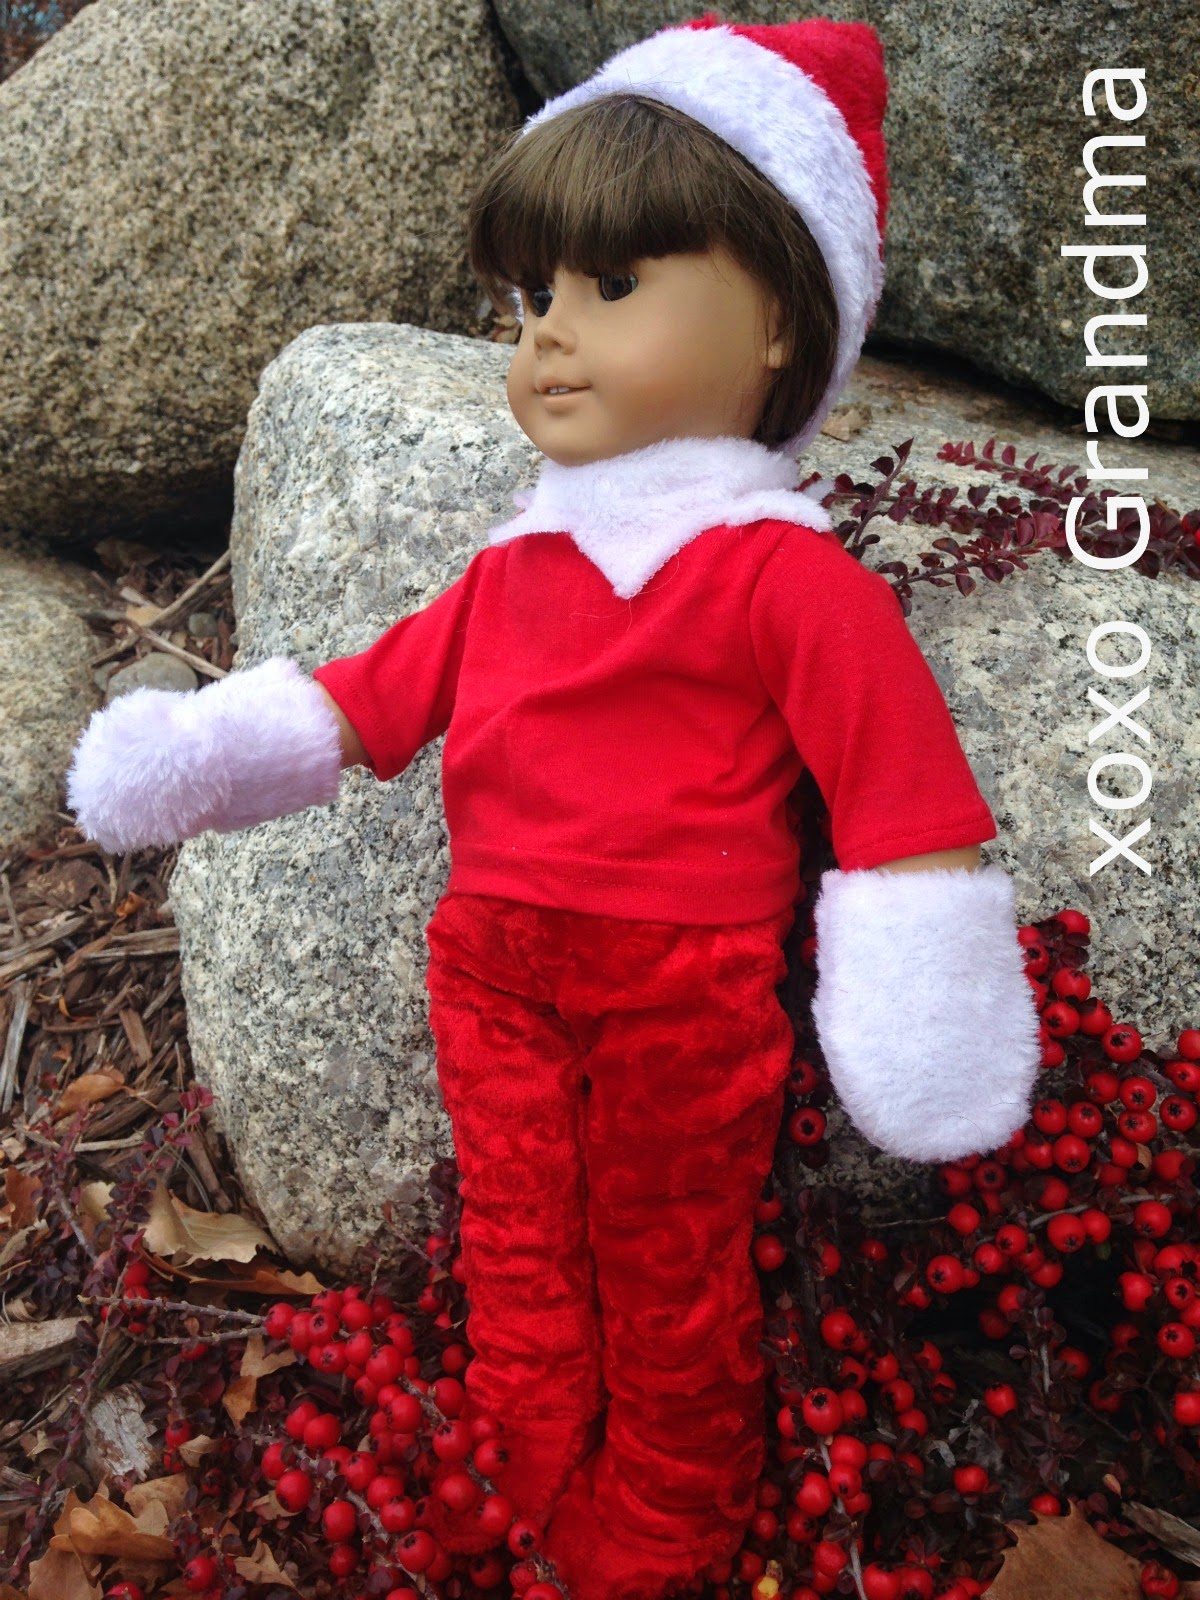 http://xoxograndma.blogspot.com/2014/12/dollar-store-purchase-doll-elf-outfit.html